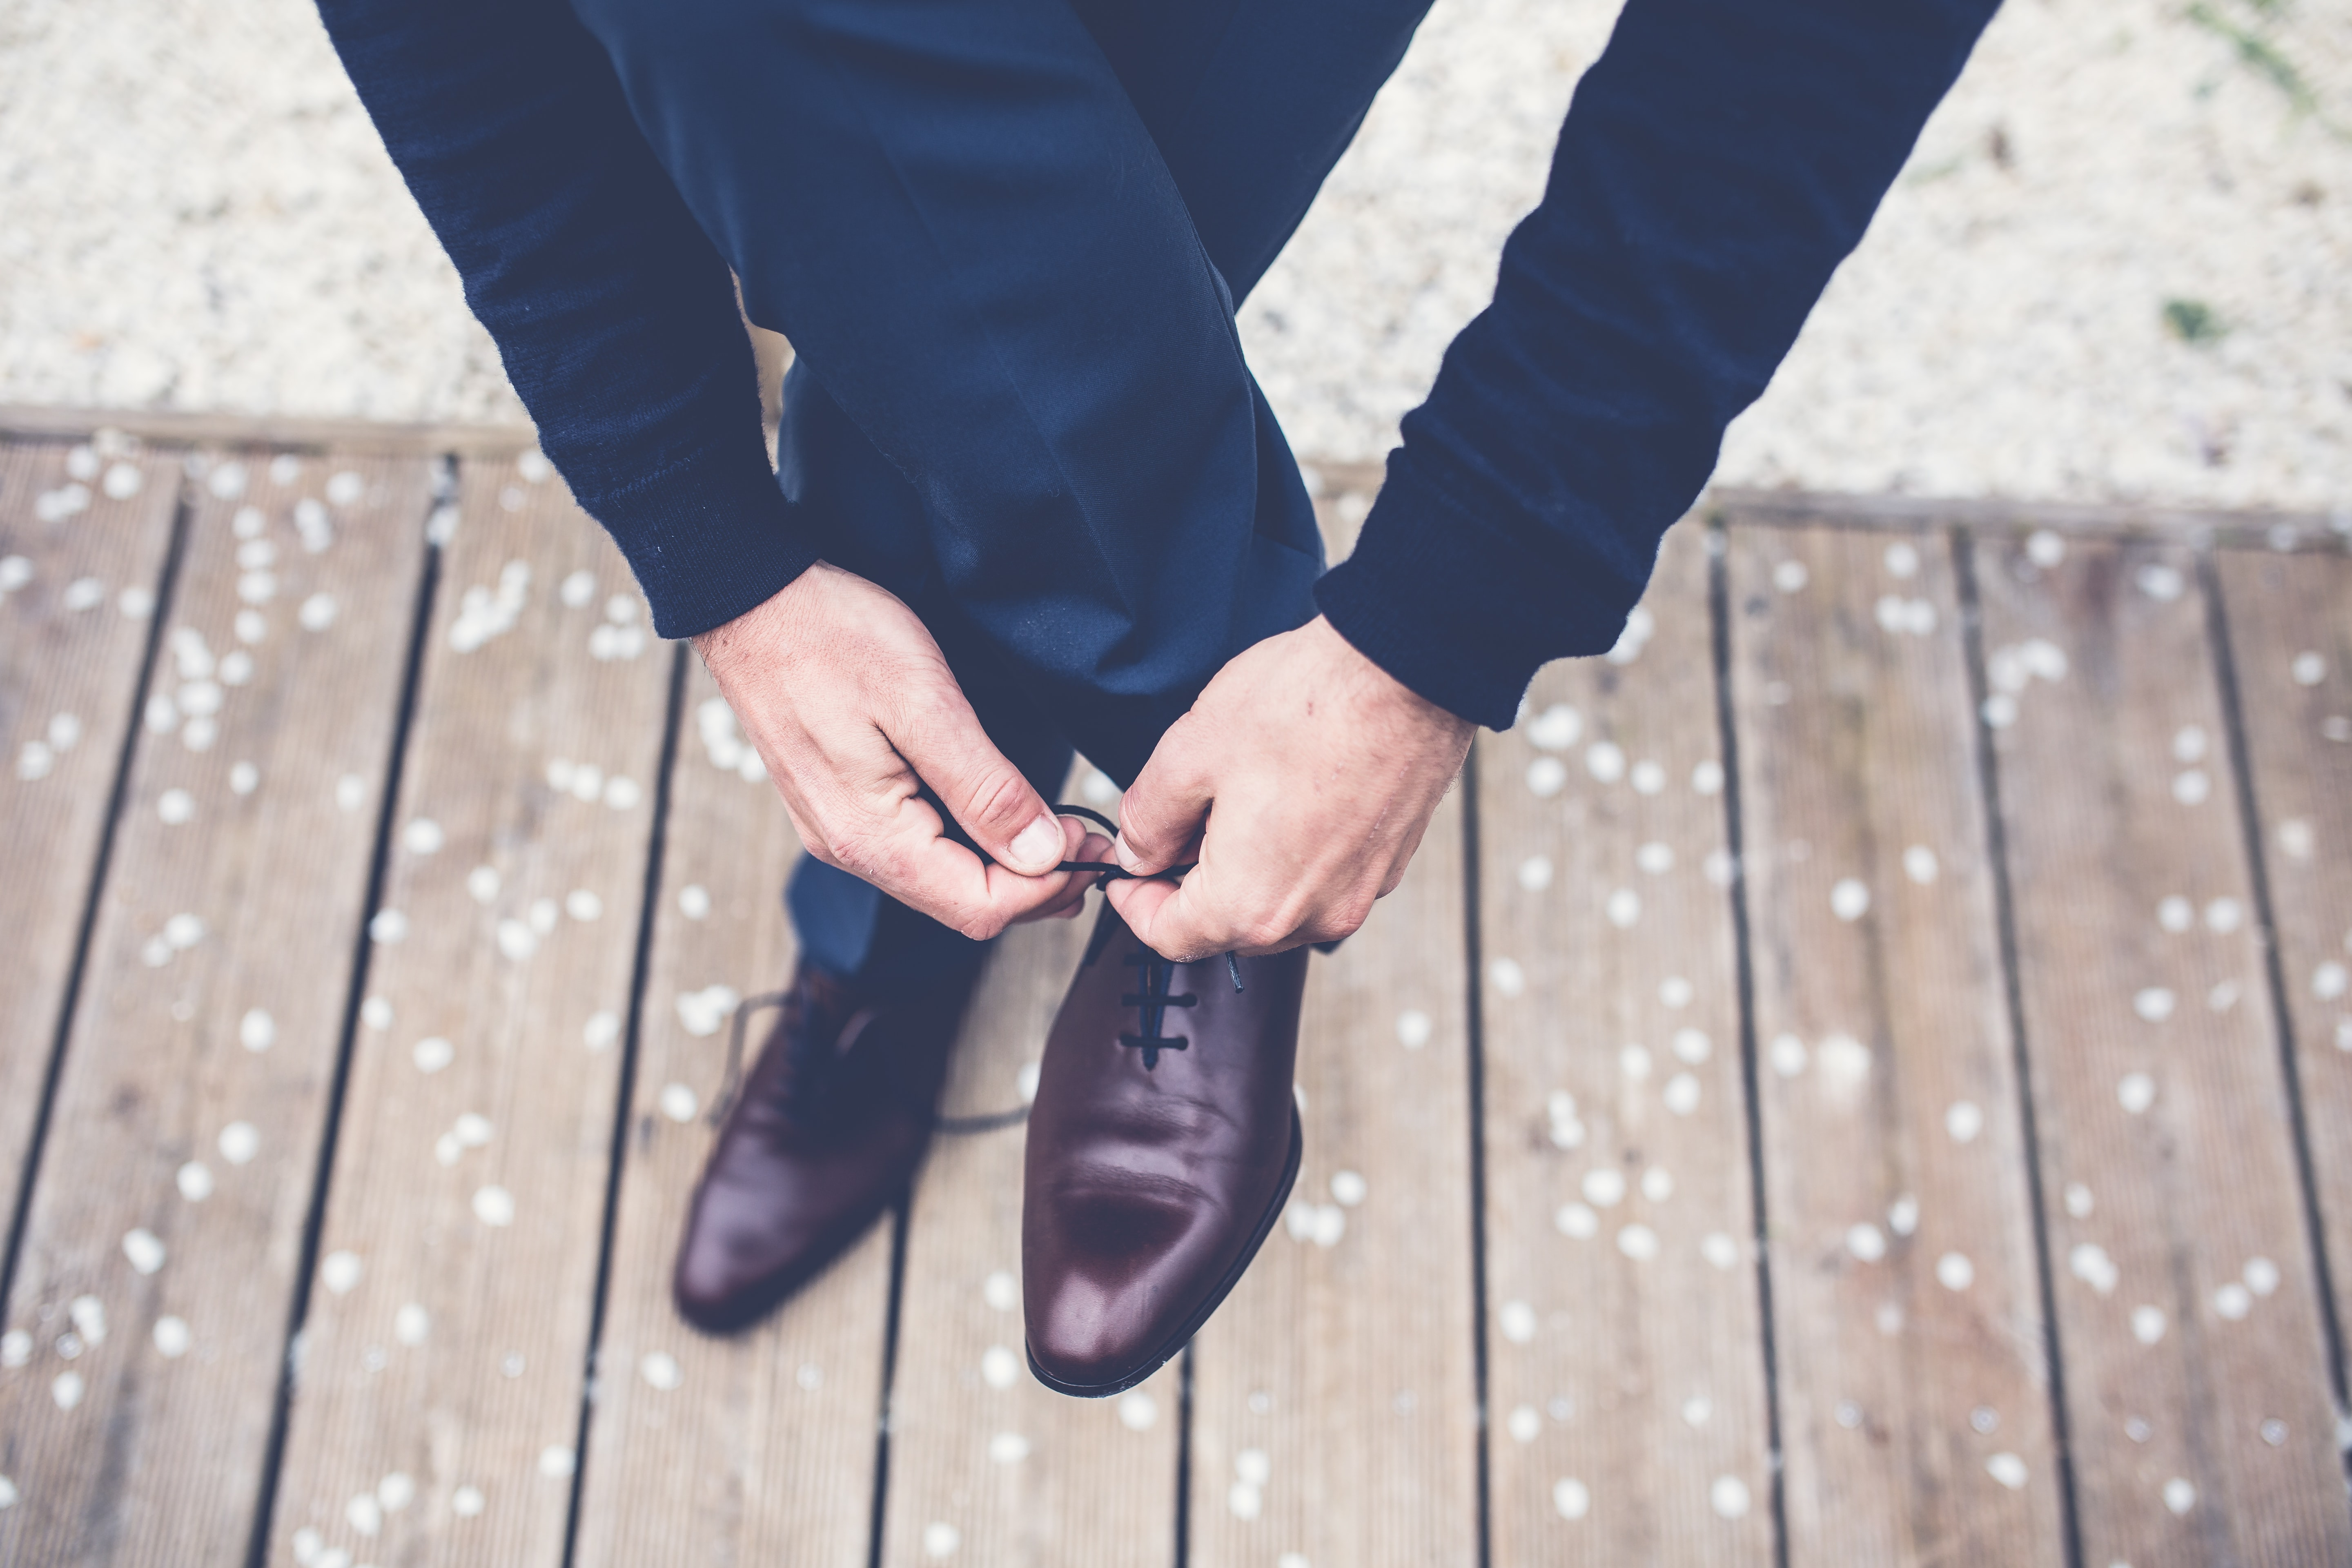 A man in a navy blue suit tying his brown leather shoes